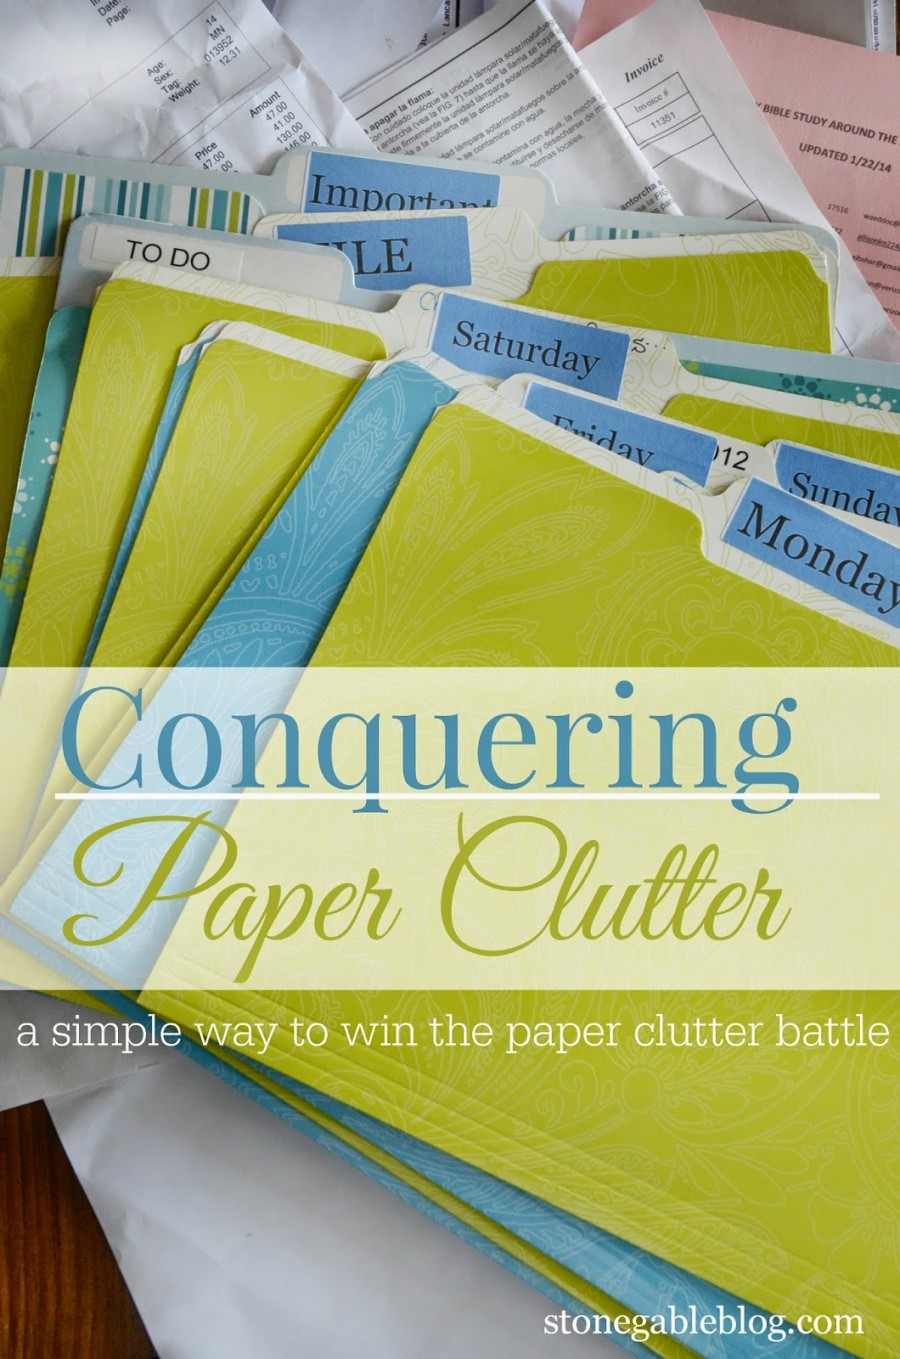 CONQUERING PAPER CLUTTER